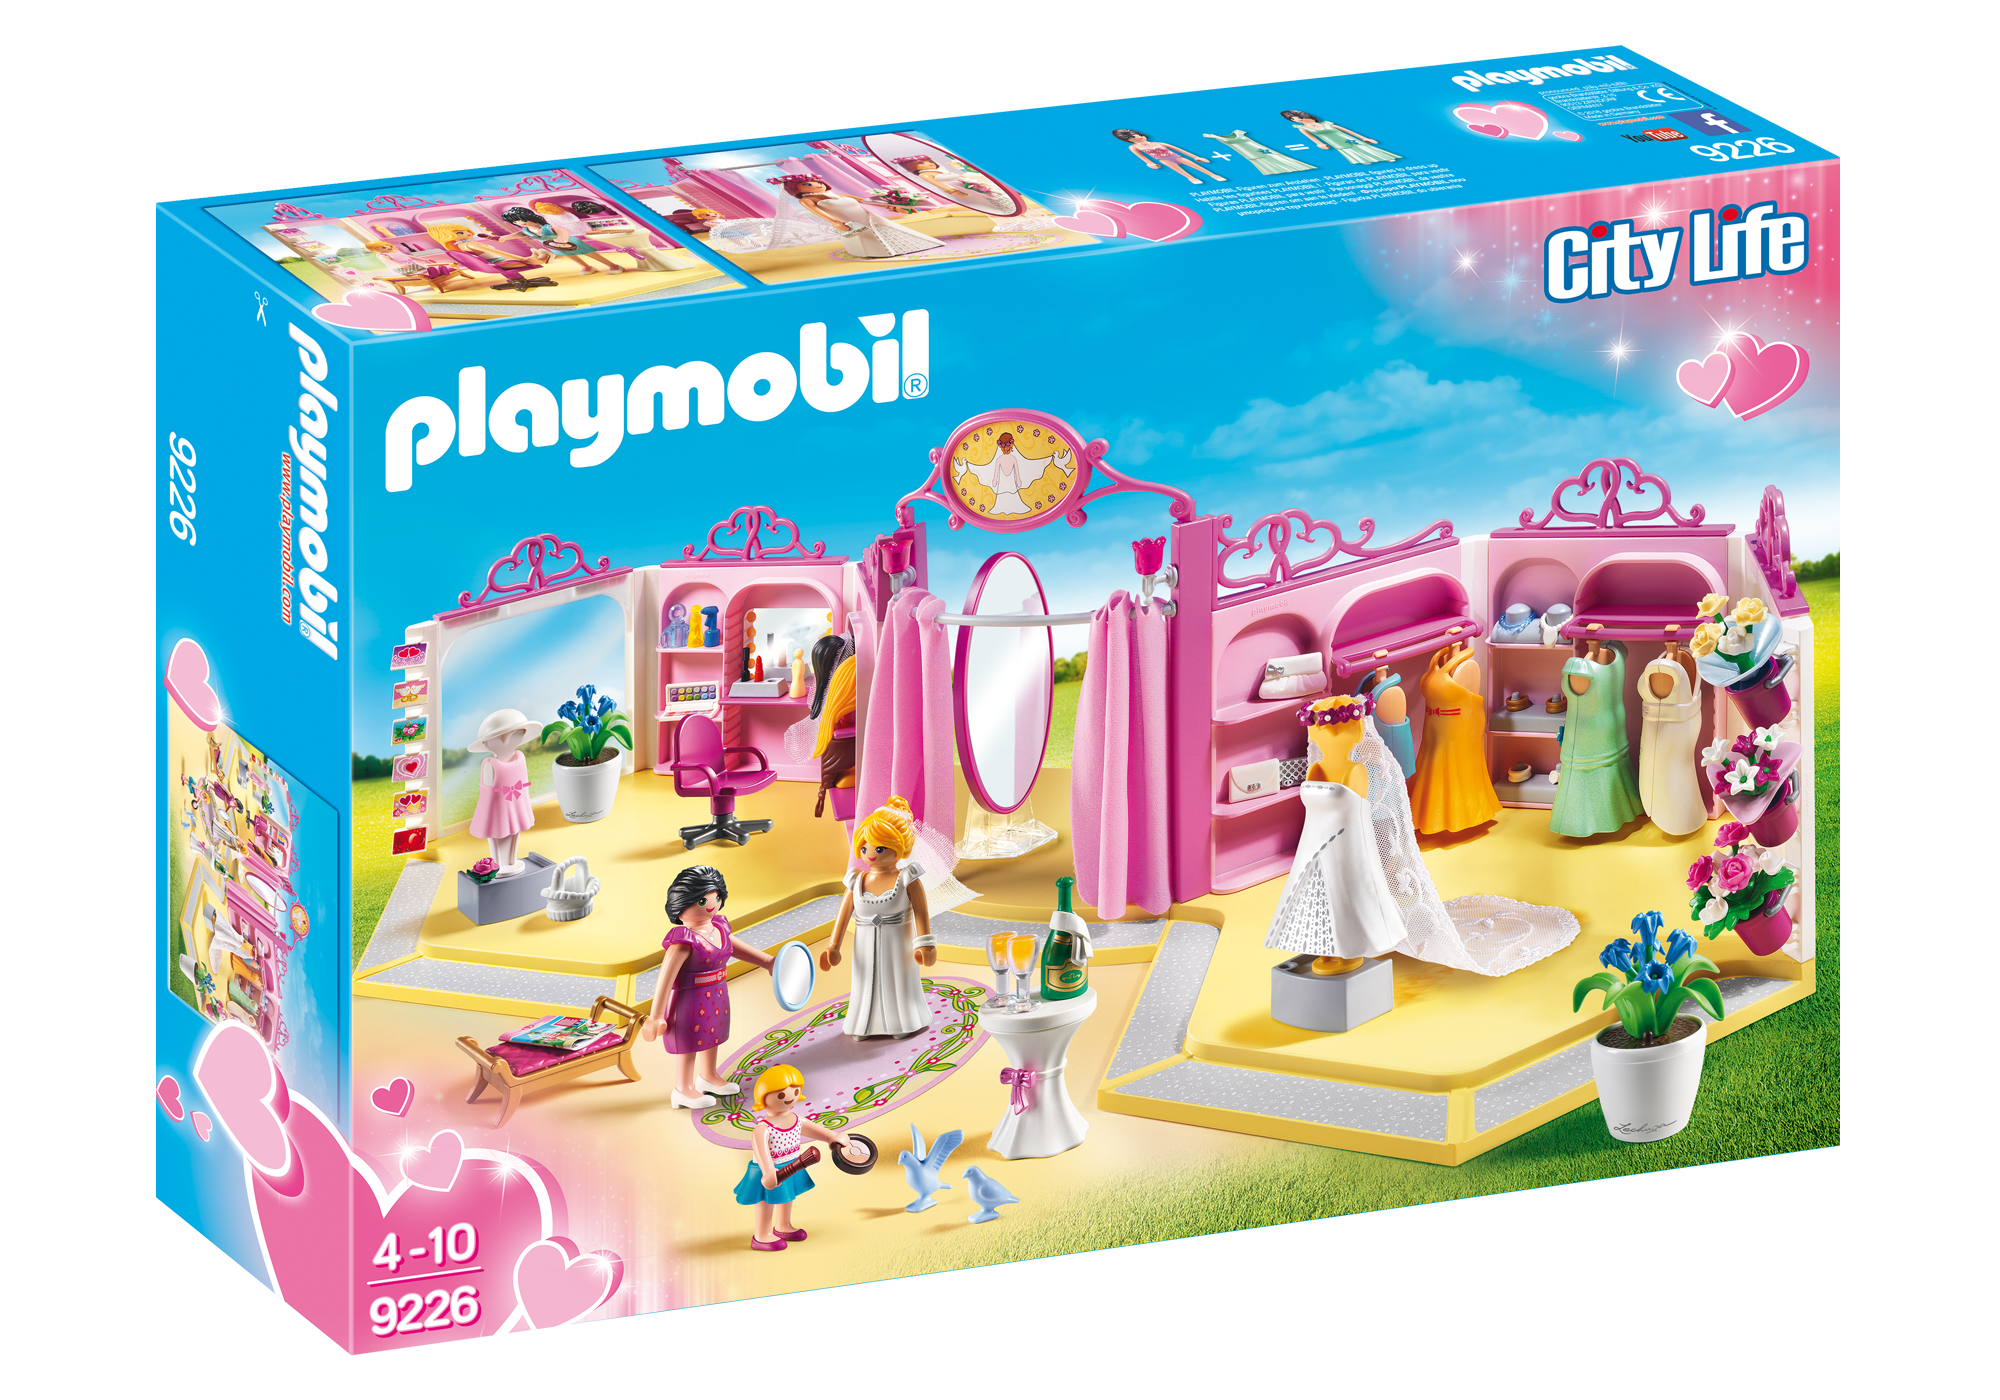 http://media.playmobil.com/i/playmobil/9226_product_box_front